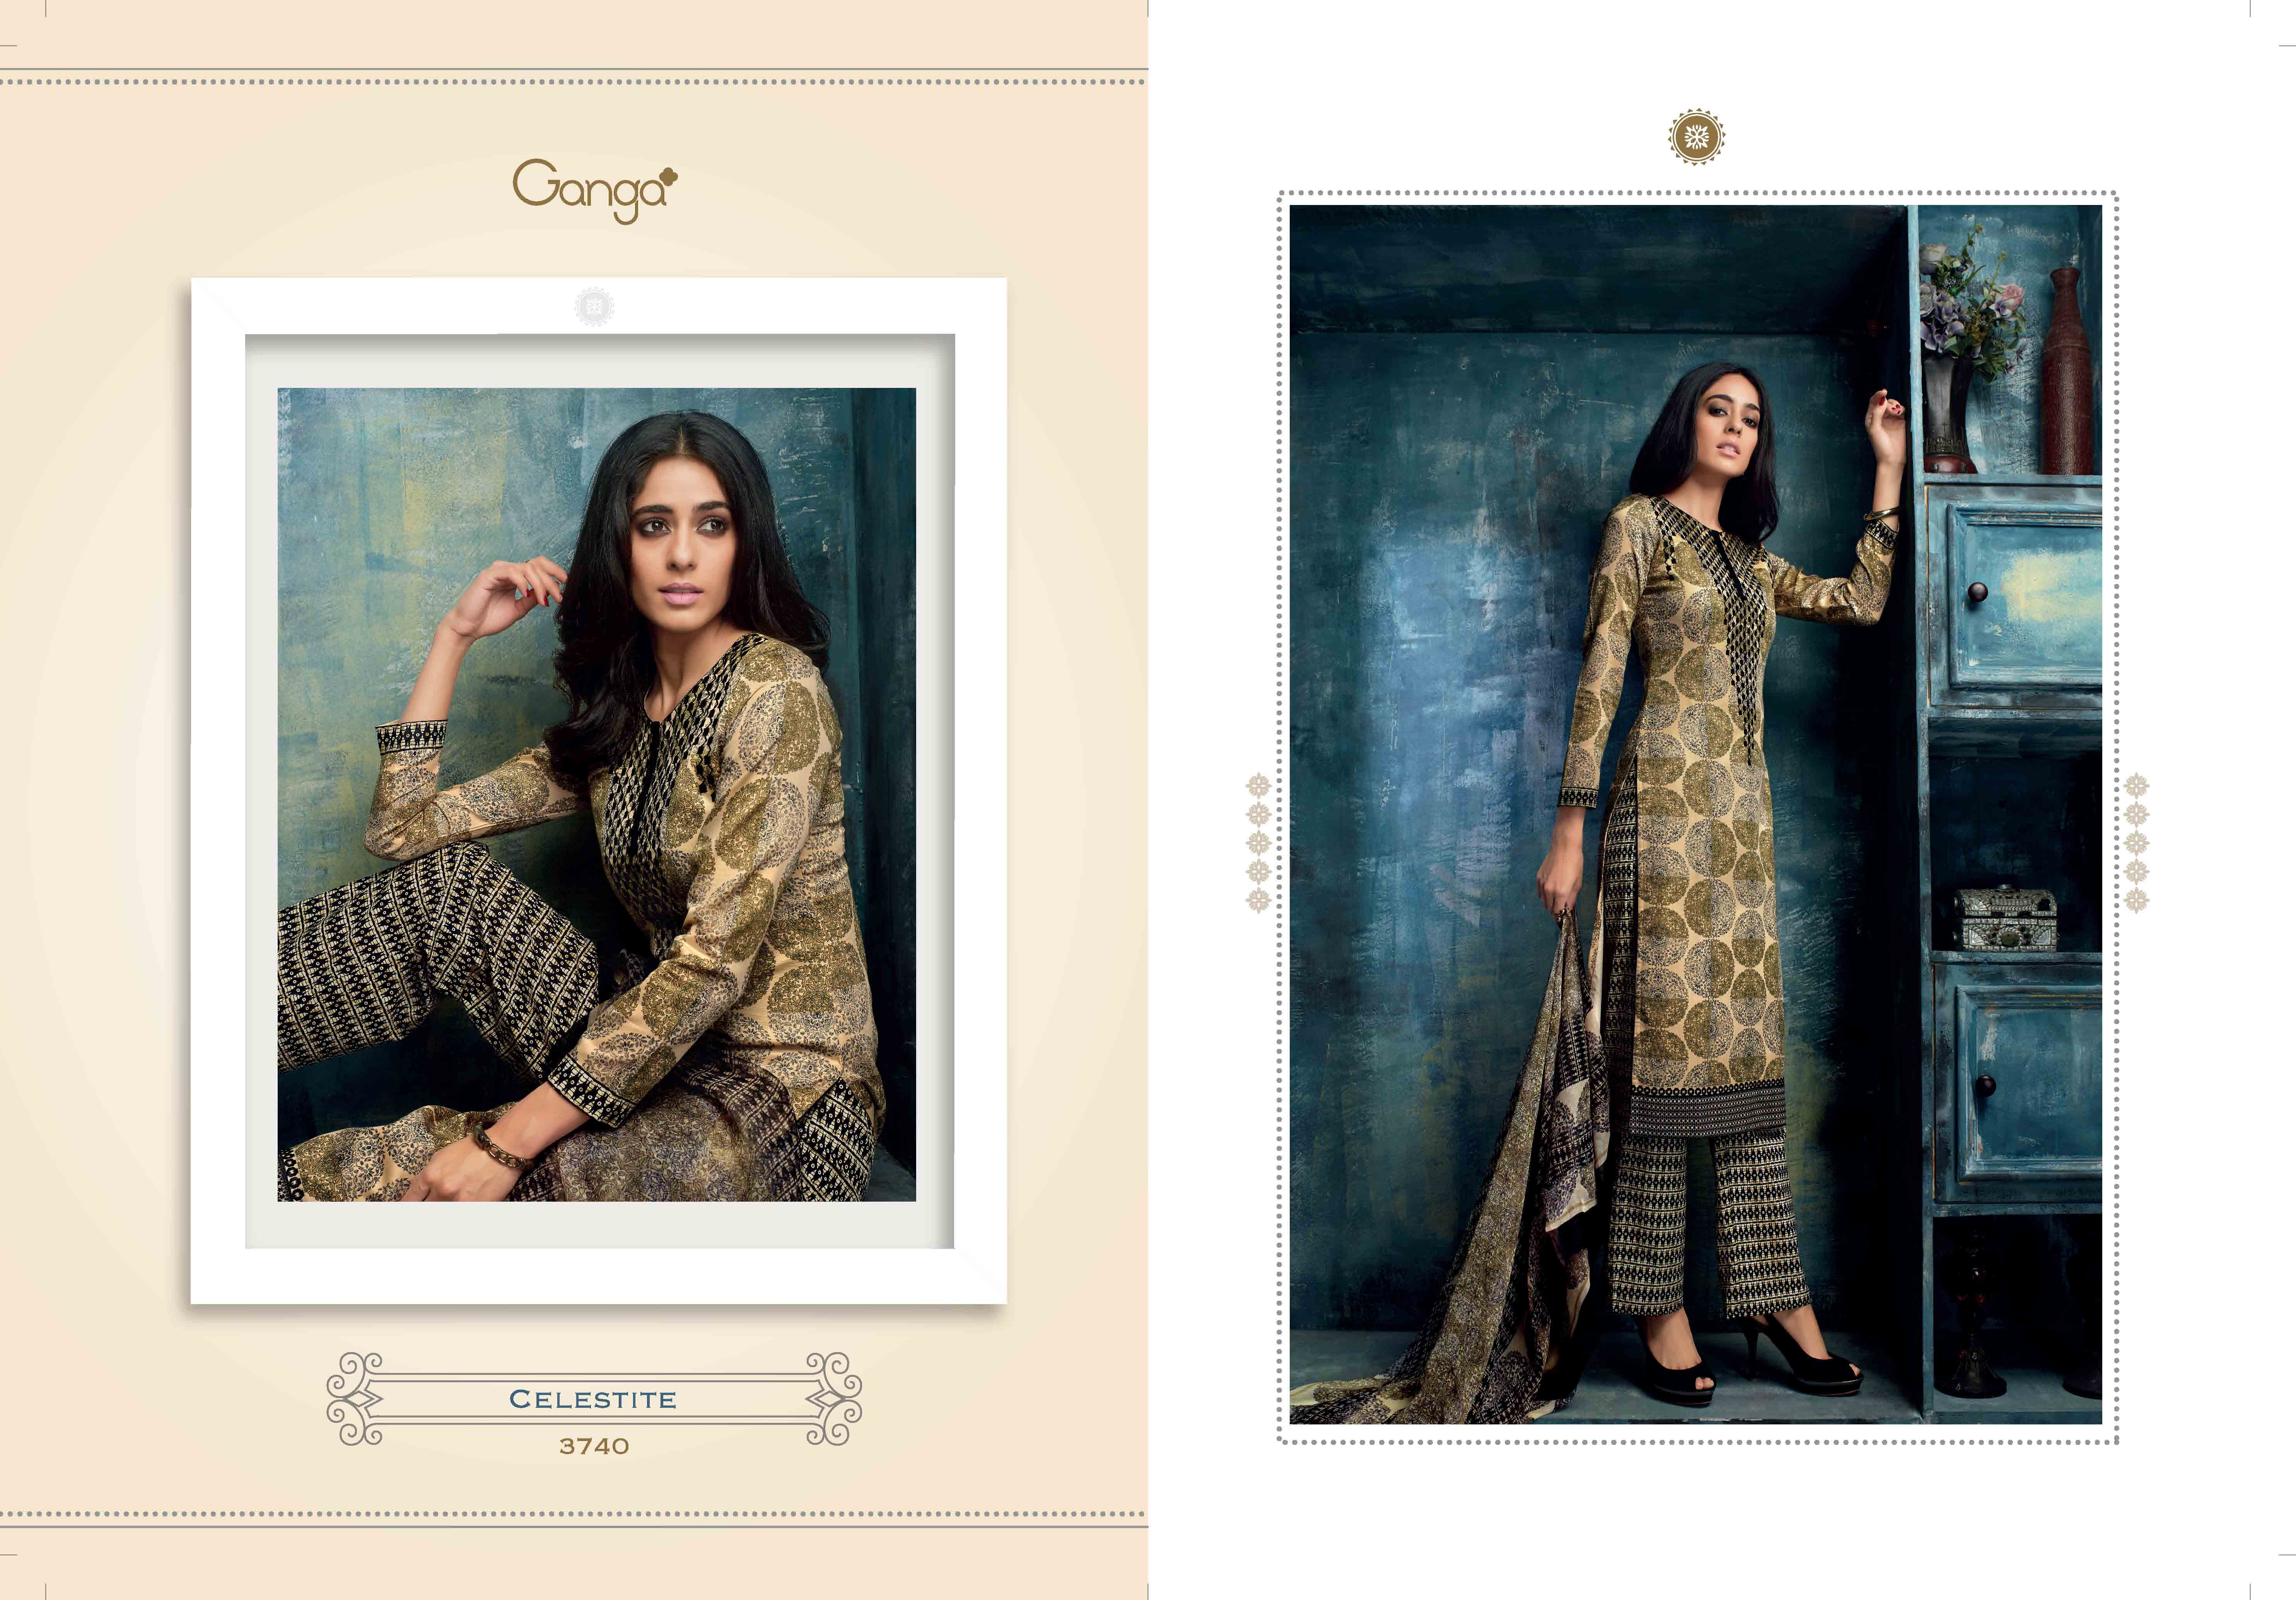 491c2e145a Ganga Celesitie Design No.3747-3748 Salwar Suit Long Pakistantani Style 100%  Pure Cotton Printed Top With Embroidery Work Neck And Pure Bemberg Chiffon  ...